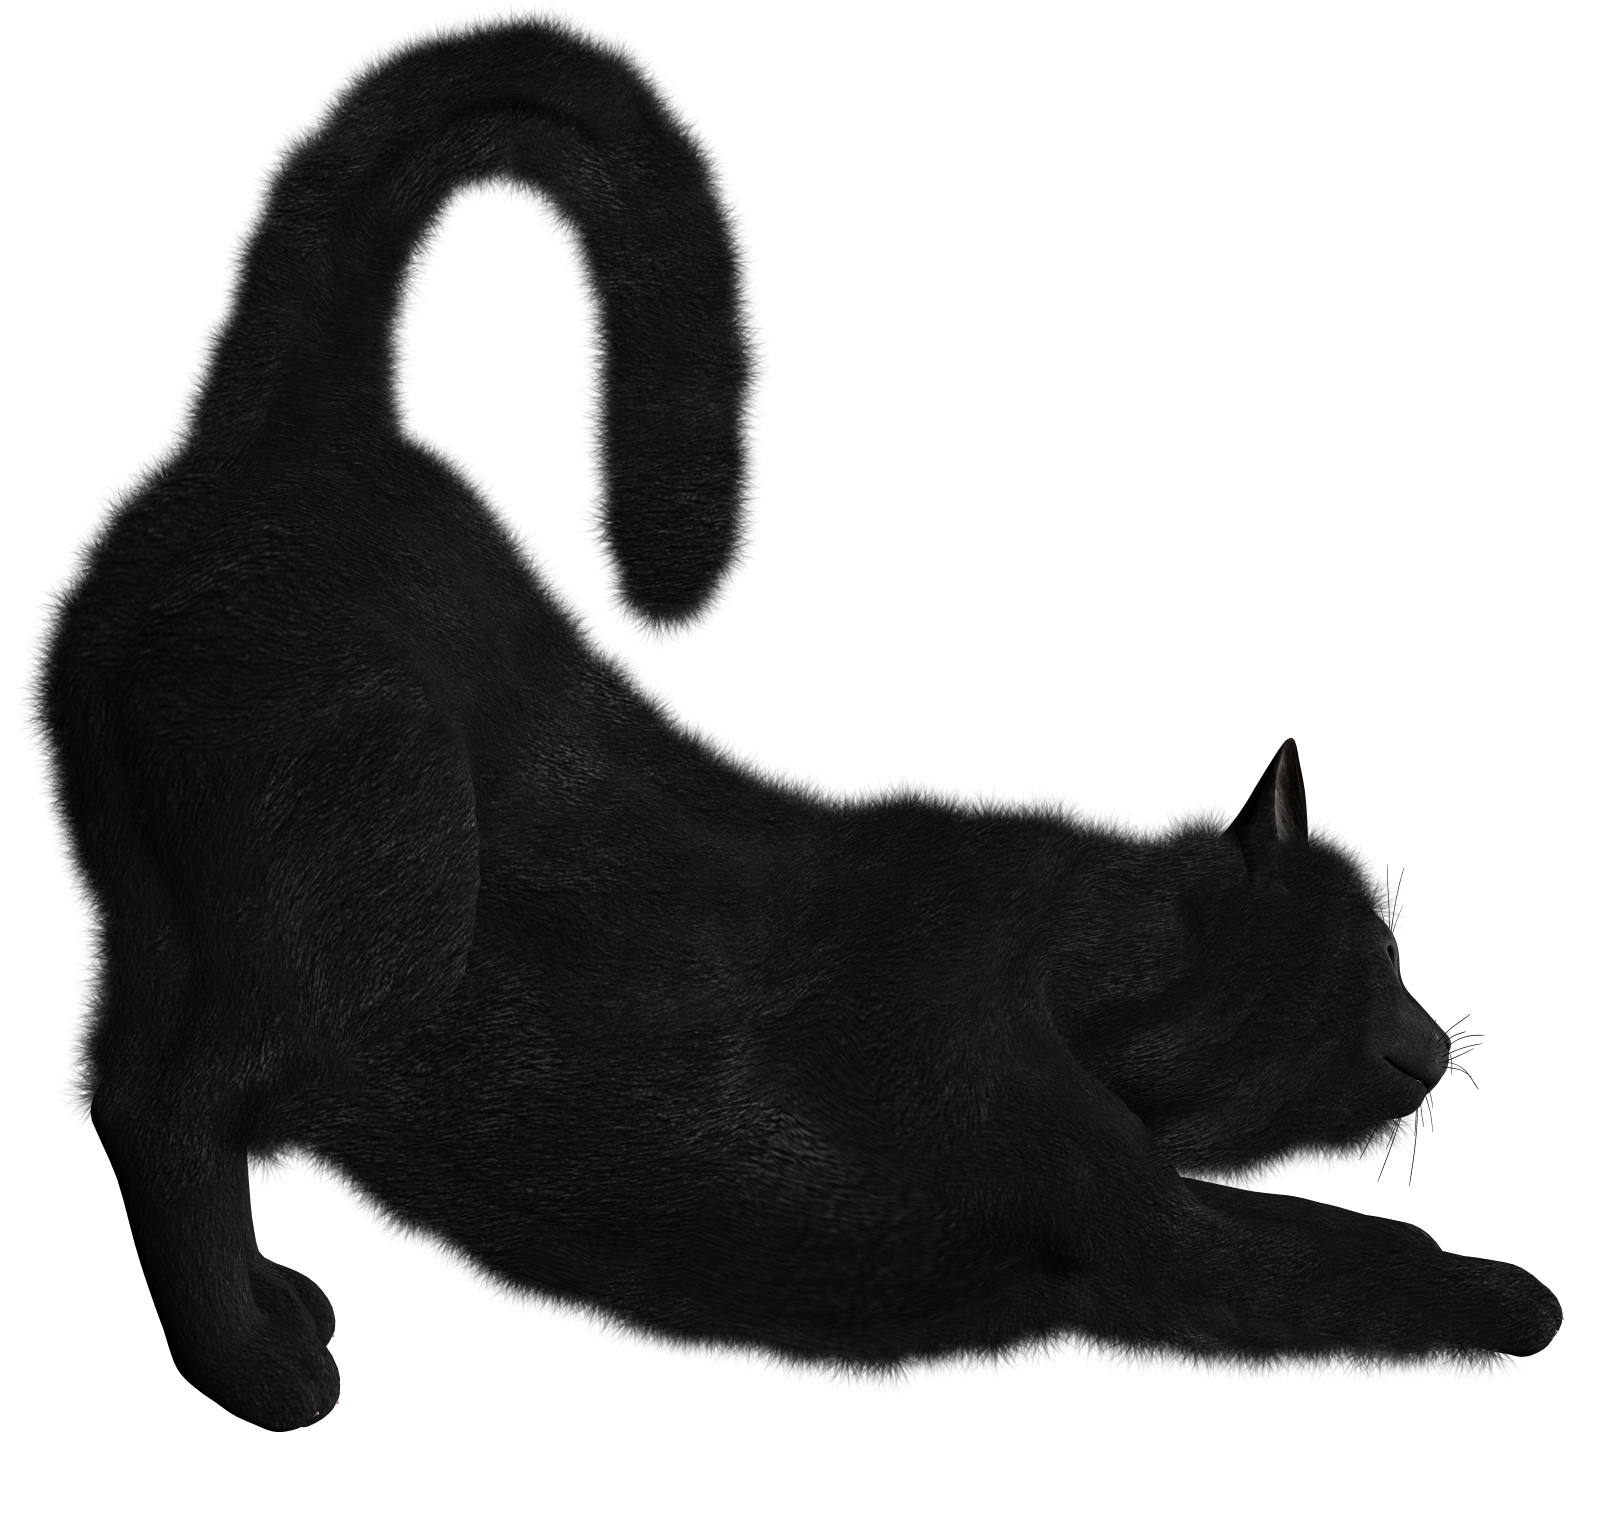 Png black cat collection. Kittens clipart cate